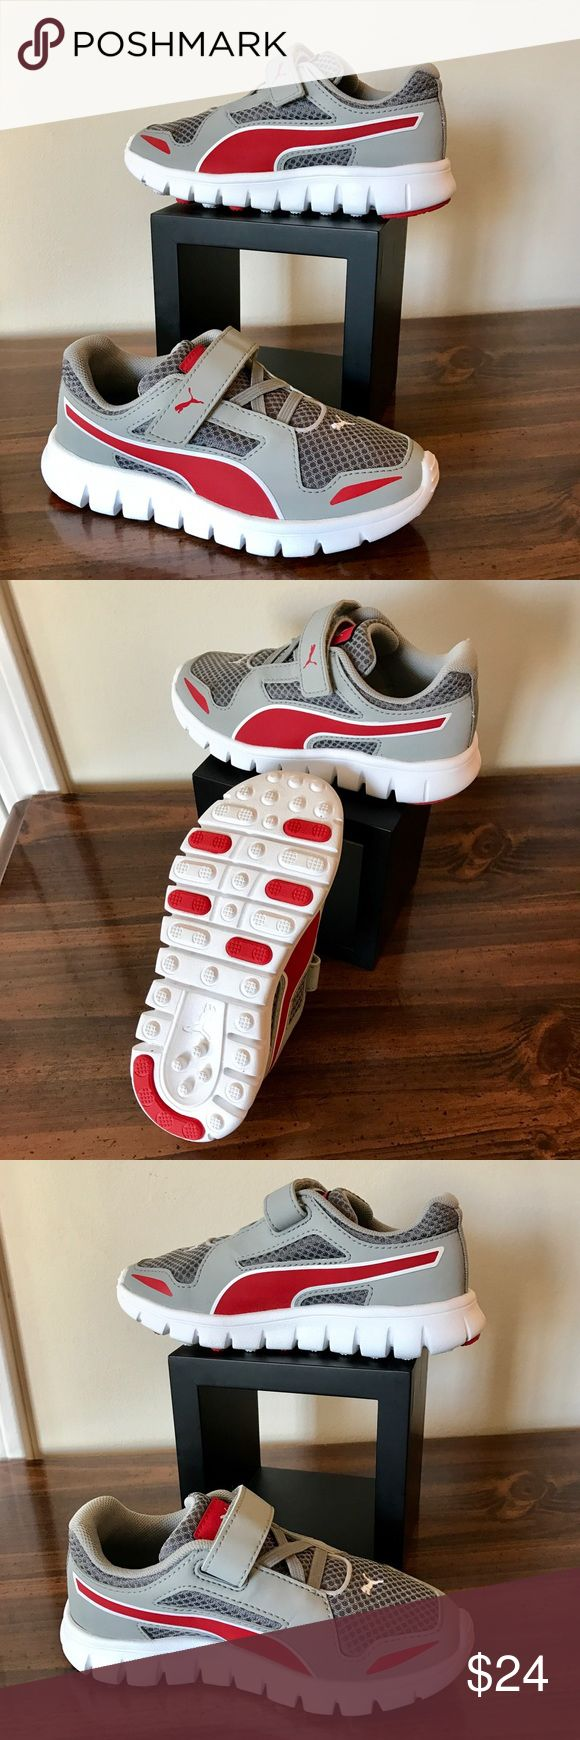 NWOT Puma Kinder-Fit Shoes, little kids 8.5. NWOT Puma Kinder-Fit Shoes, little kids 8.5. Never tried on so brand NEW without the box or tags however stickers are still on them.  Versatile athletic play shoes for boys or girls! Easy on/off with the velcro top.  Come from a pet/smoke free home. Puma Shoes Sneakers